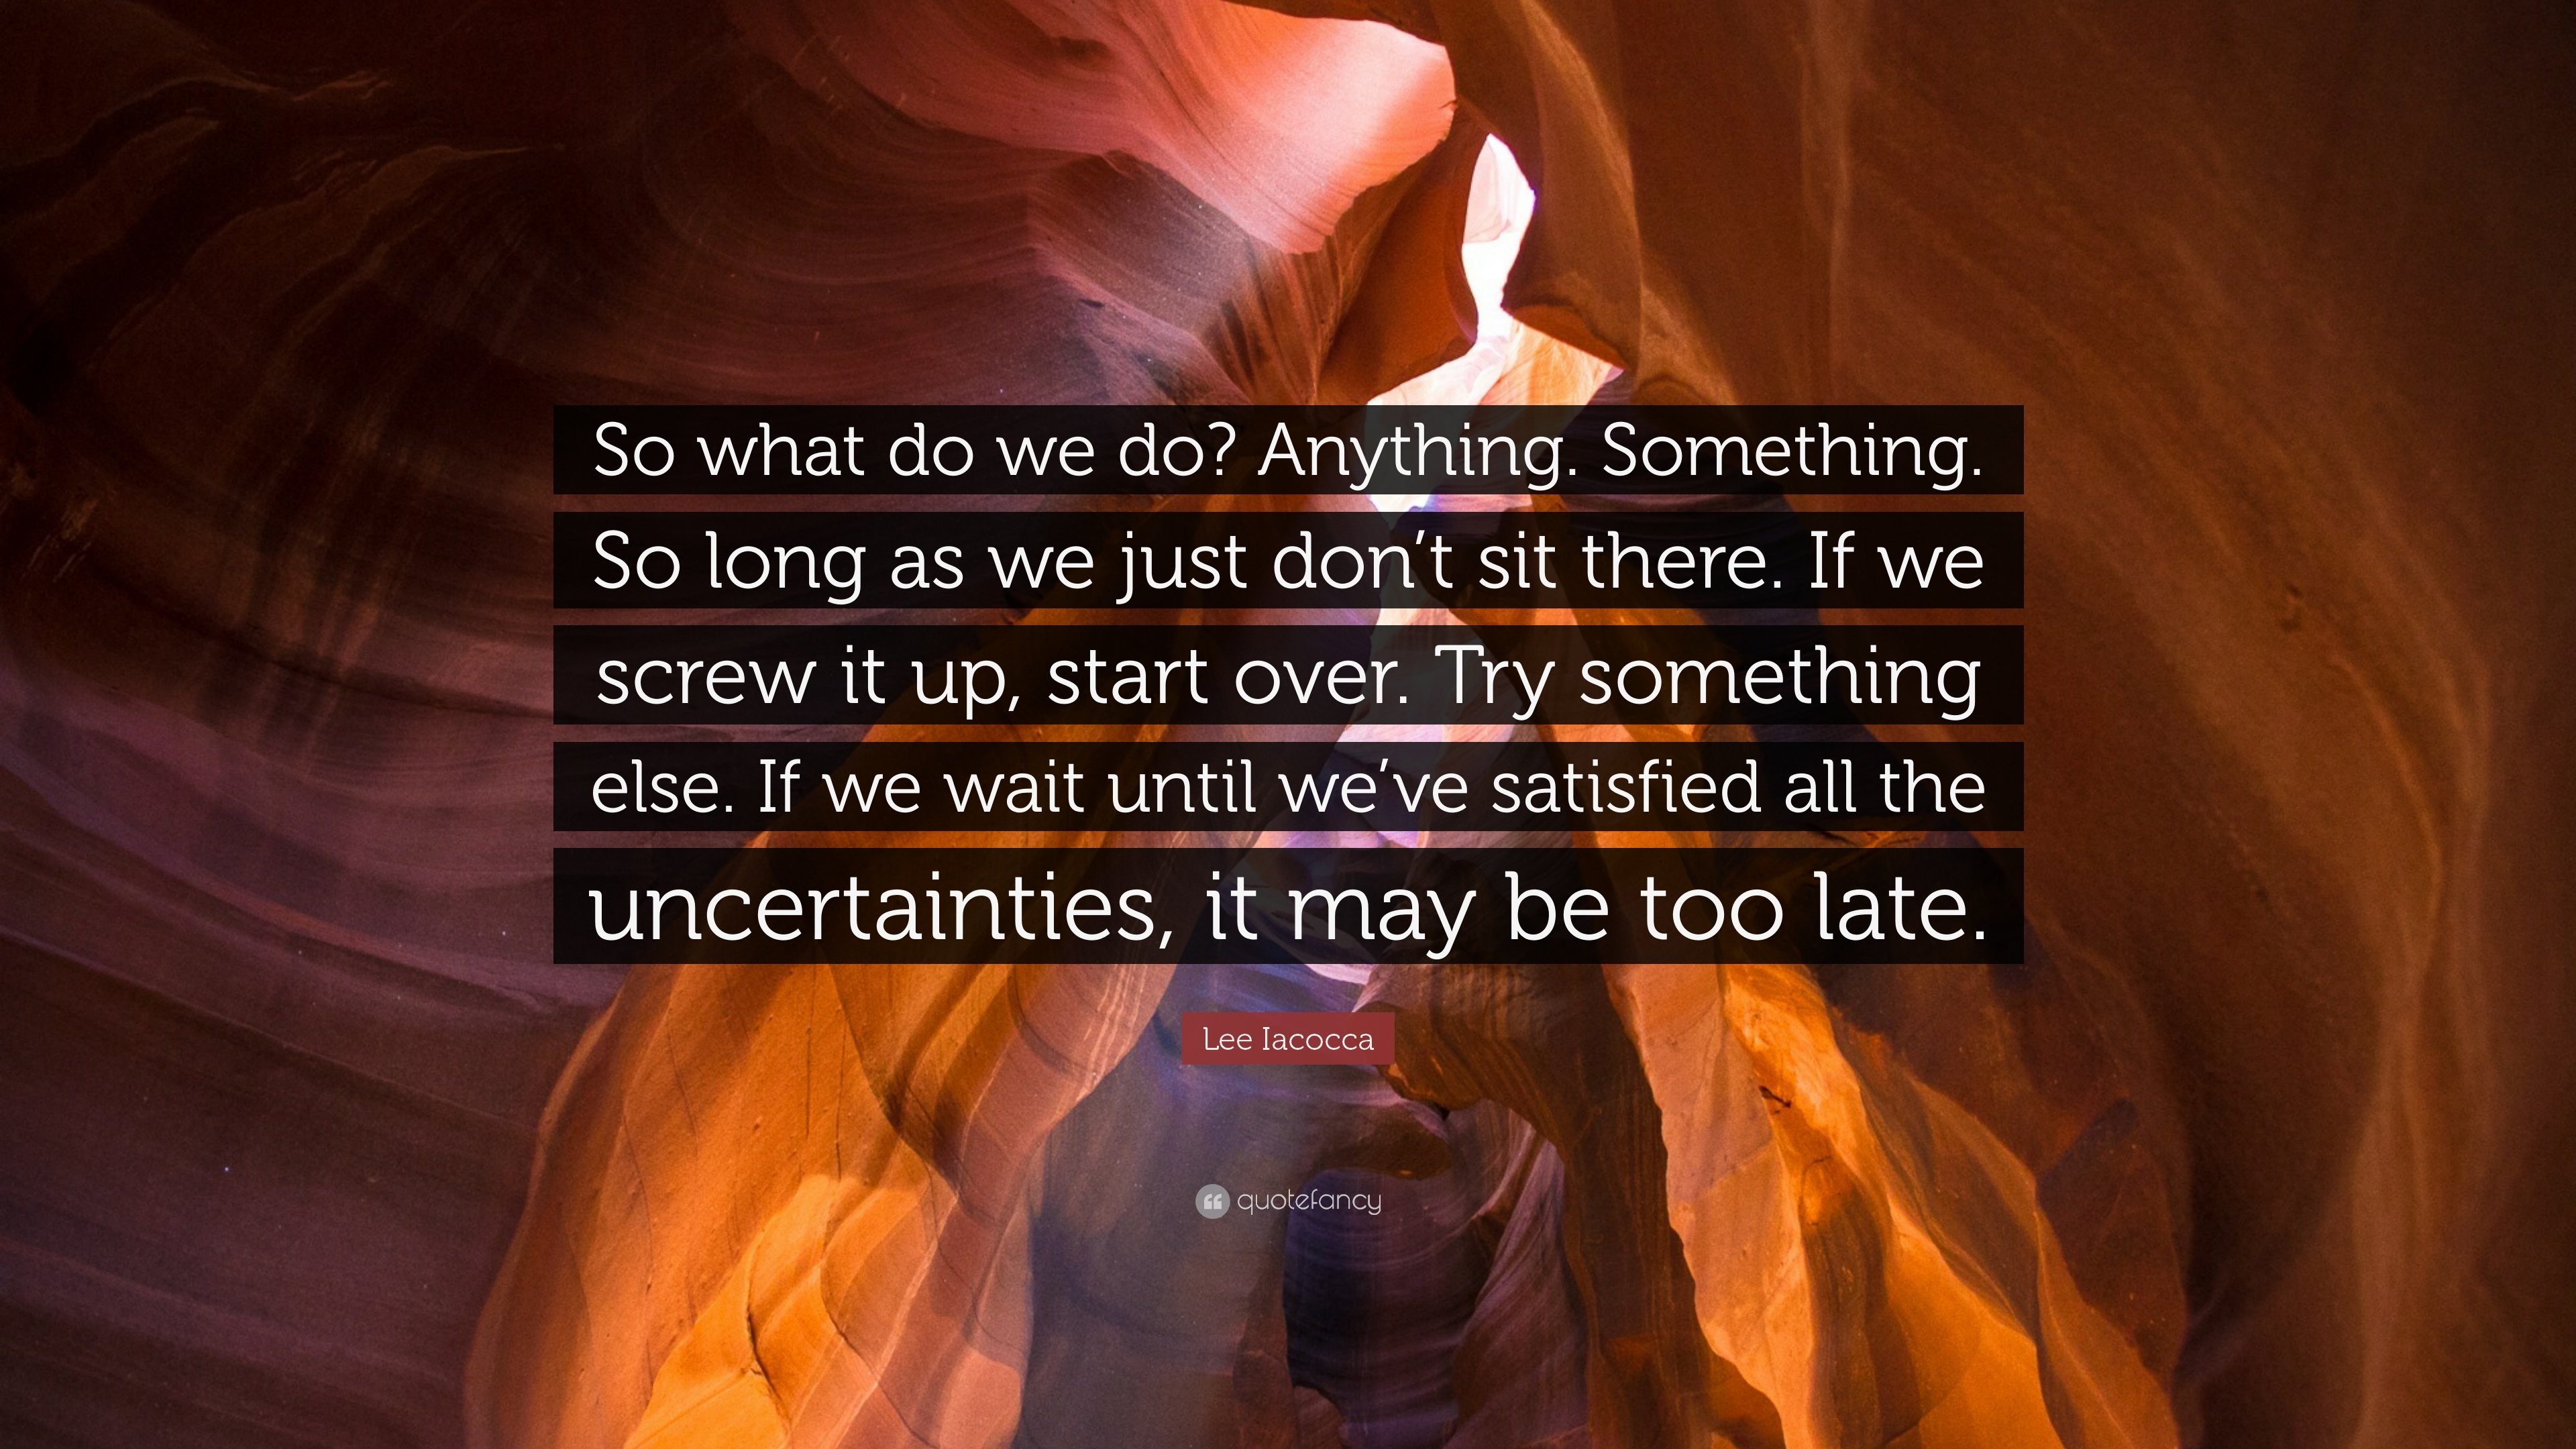 """So what do we do? Anything. Something. So long as we just don't sit there. If we screw it up, start over. Try something else. If we wait until we've satisfied all the uncertainties, it may be too late."" –Lee Iacocca [3840 x 2160]"